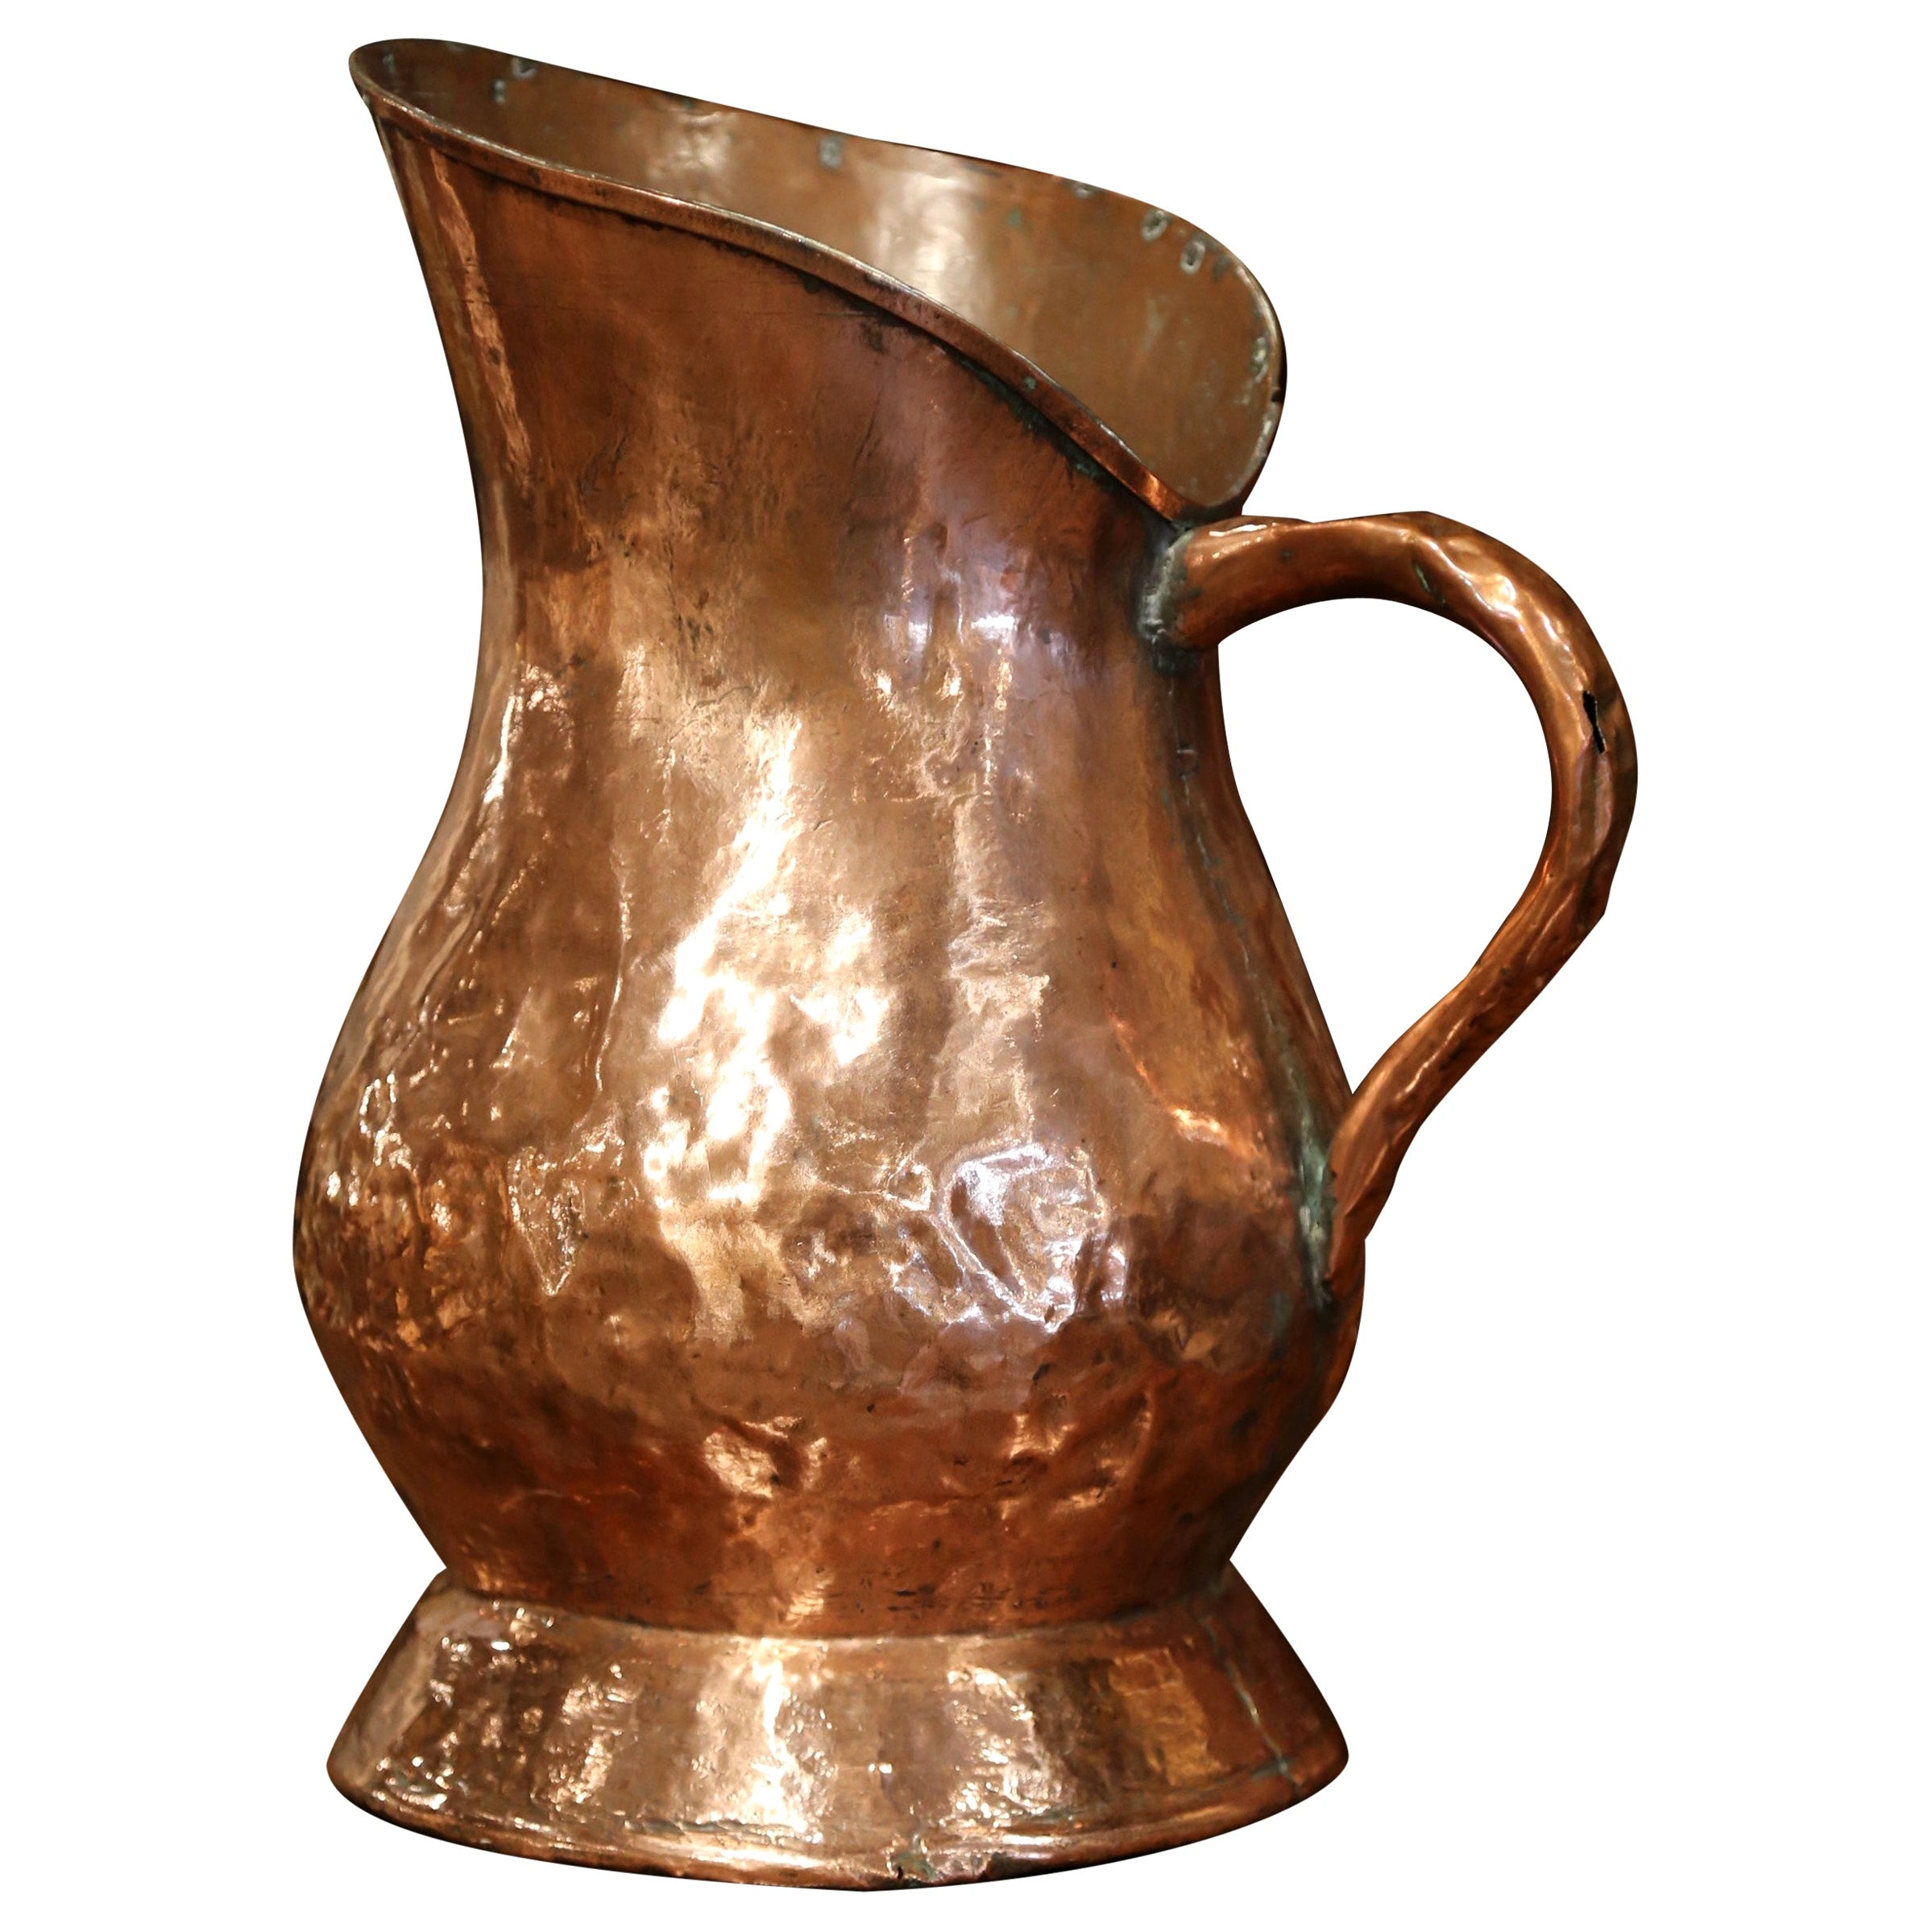 18th Century French Polished Copper Decorative Coal Bucket or Umbrella Stand